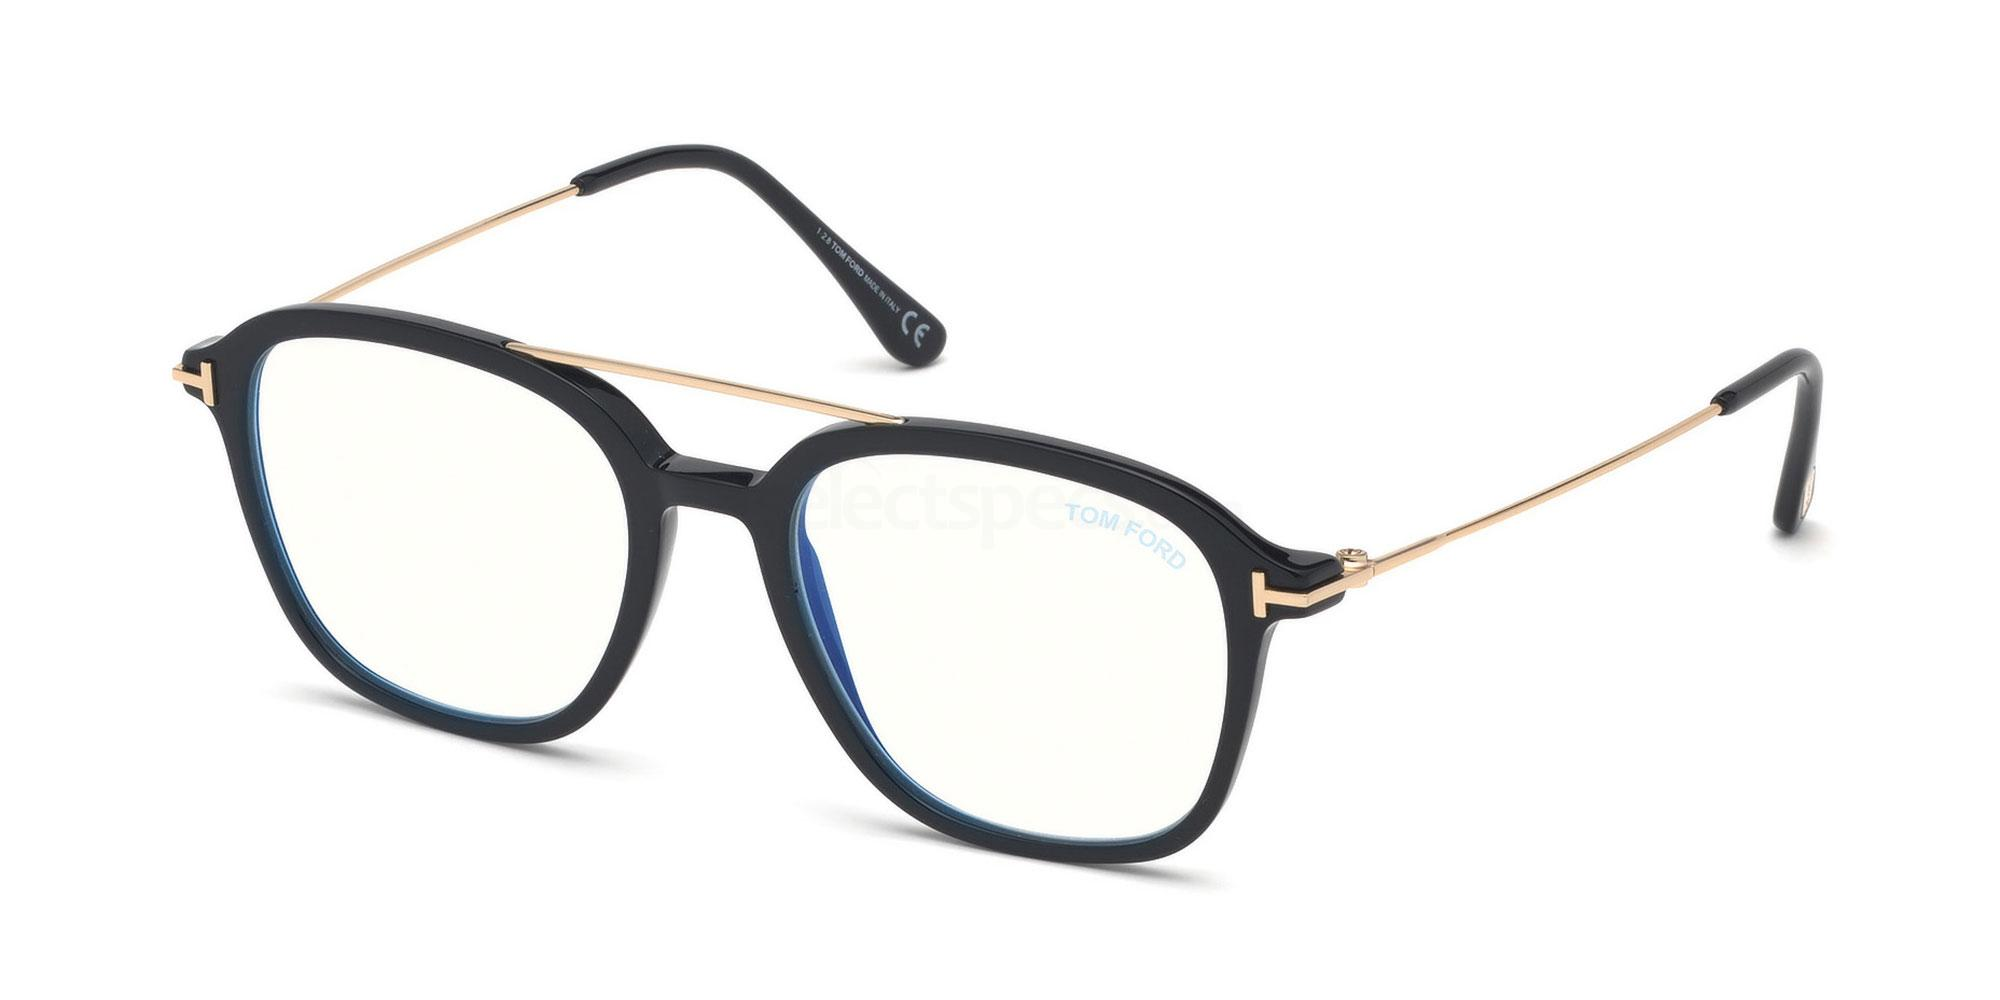 001 FT5610-B Glasses, Tom Ford